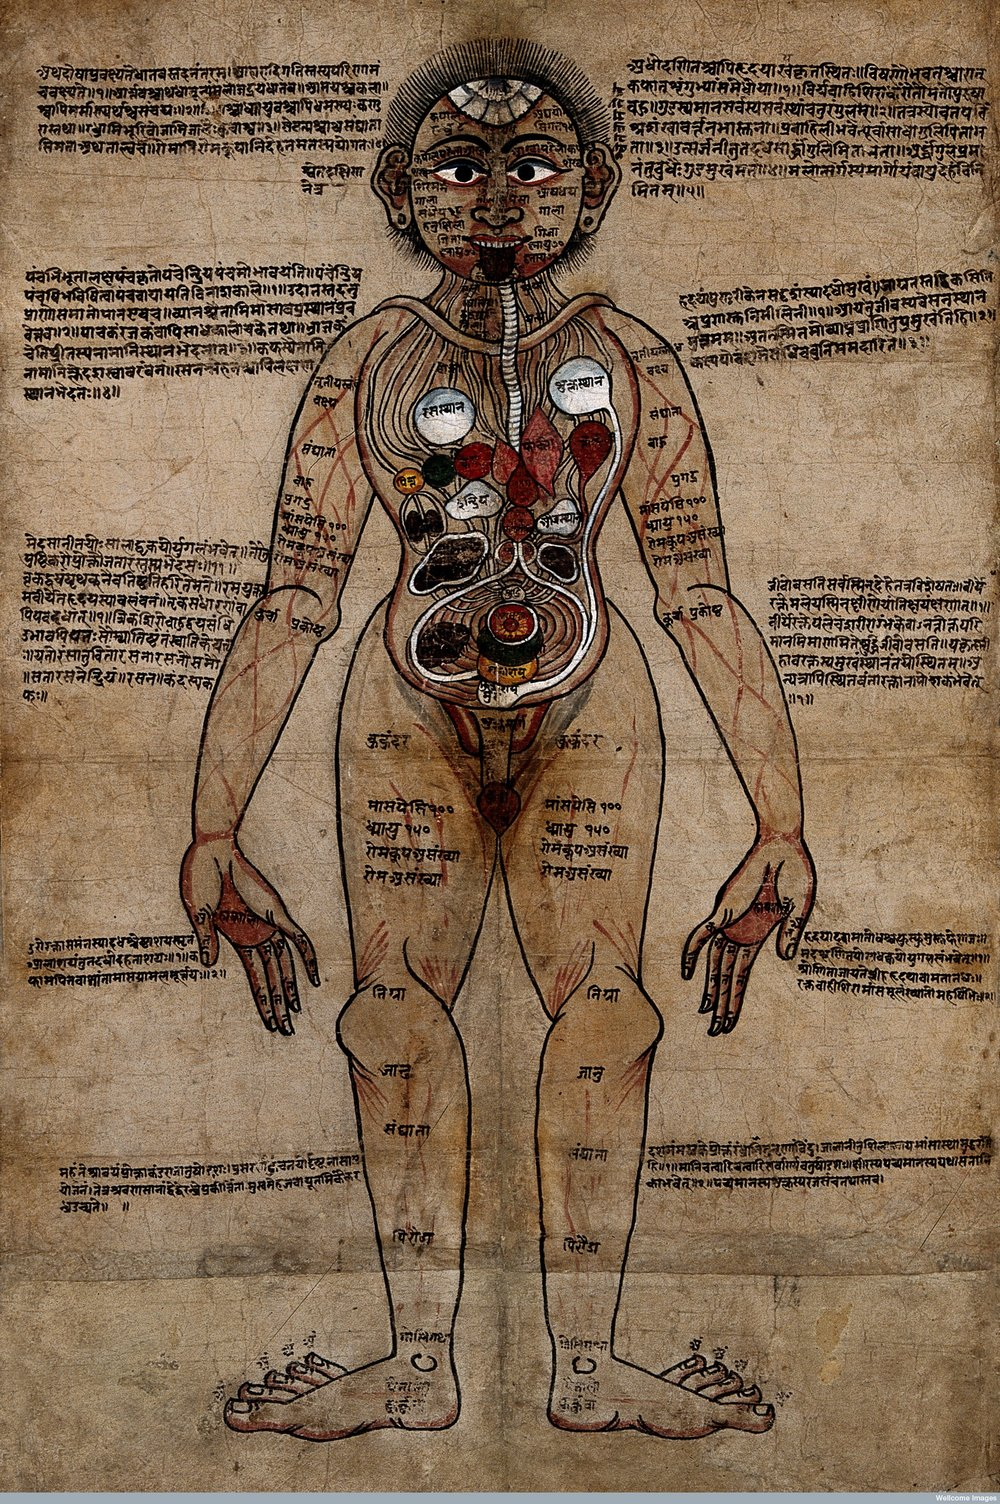 The Ayurvedic Man, pen and watercolour, 18th Century. Wellcome Library, London.